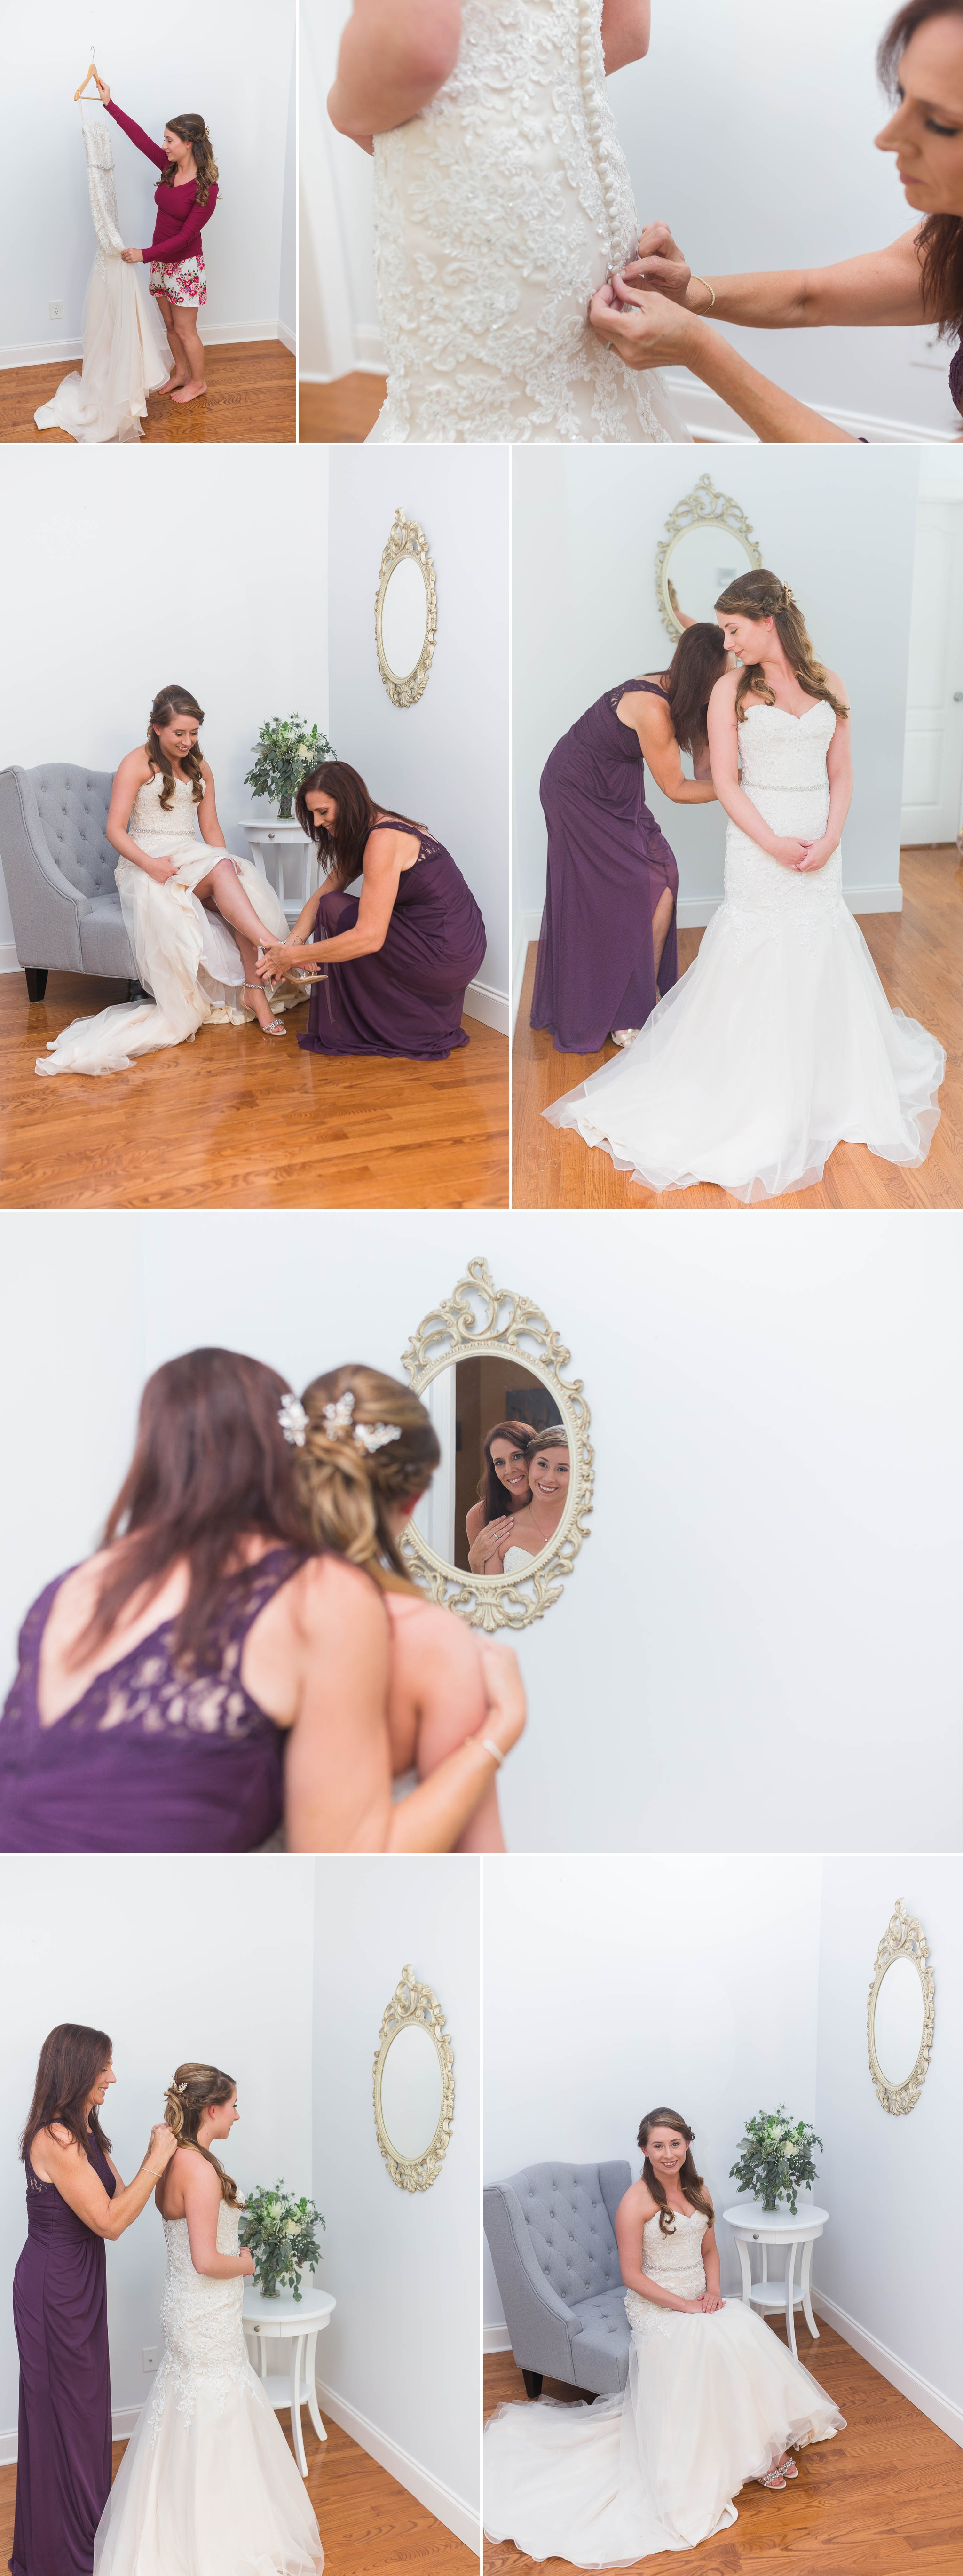 Bride and Mother getting ready and putting on dress - Chatham Mills in Pittsboro North Carolina Wedding Photography - Johanna Dye - Meredith and Brandon